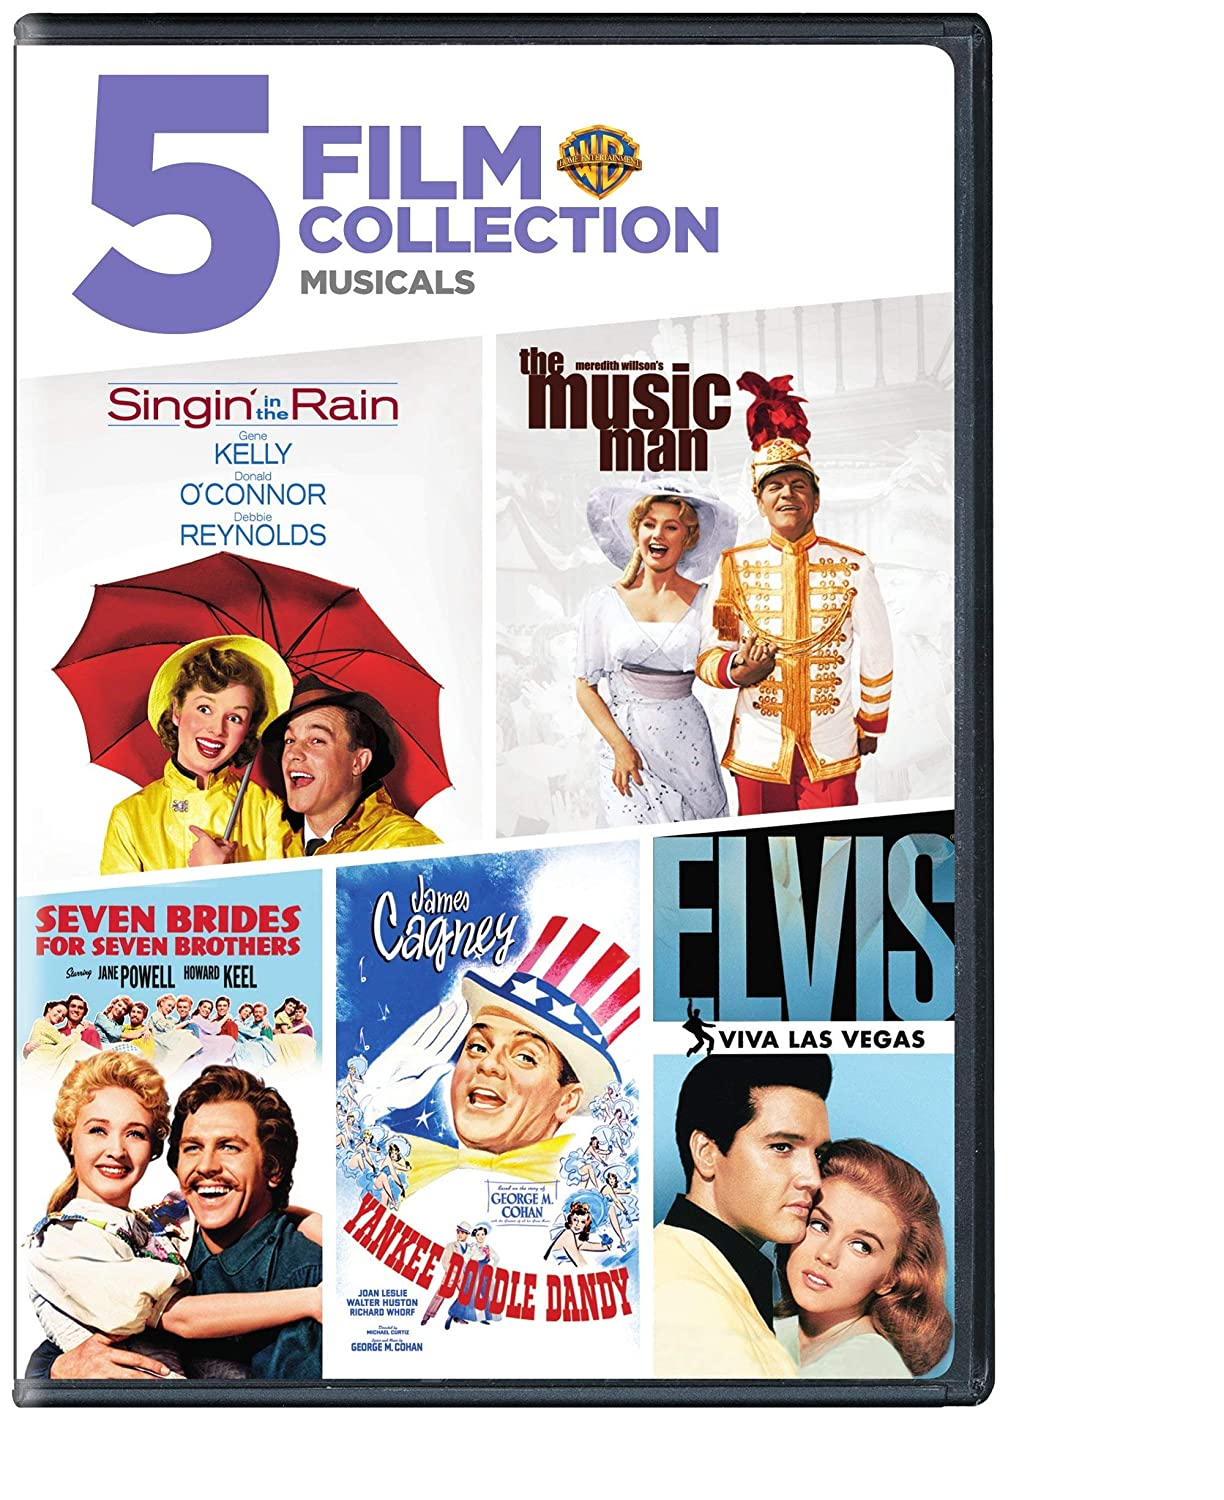 Amazon.com  Singin  in the Rain   The Music Man   Seven Brides For Seven  Brothers   Yankee Doodle Dandy   Elvis-Viva Las Vegas (5 Film Collection  Musicals)  ... a8246c85e54f9